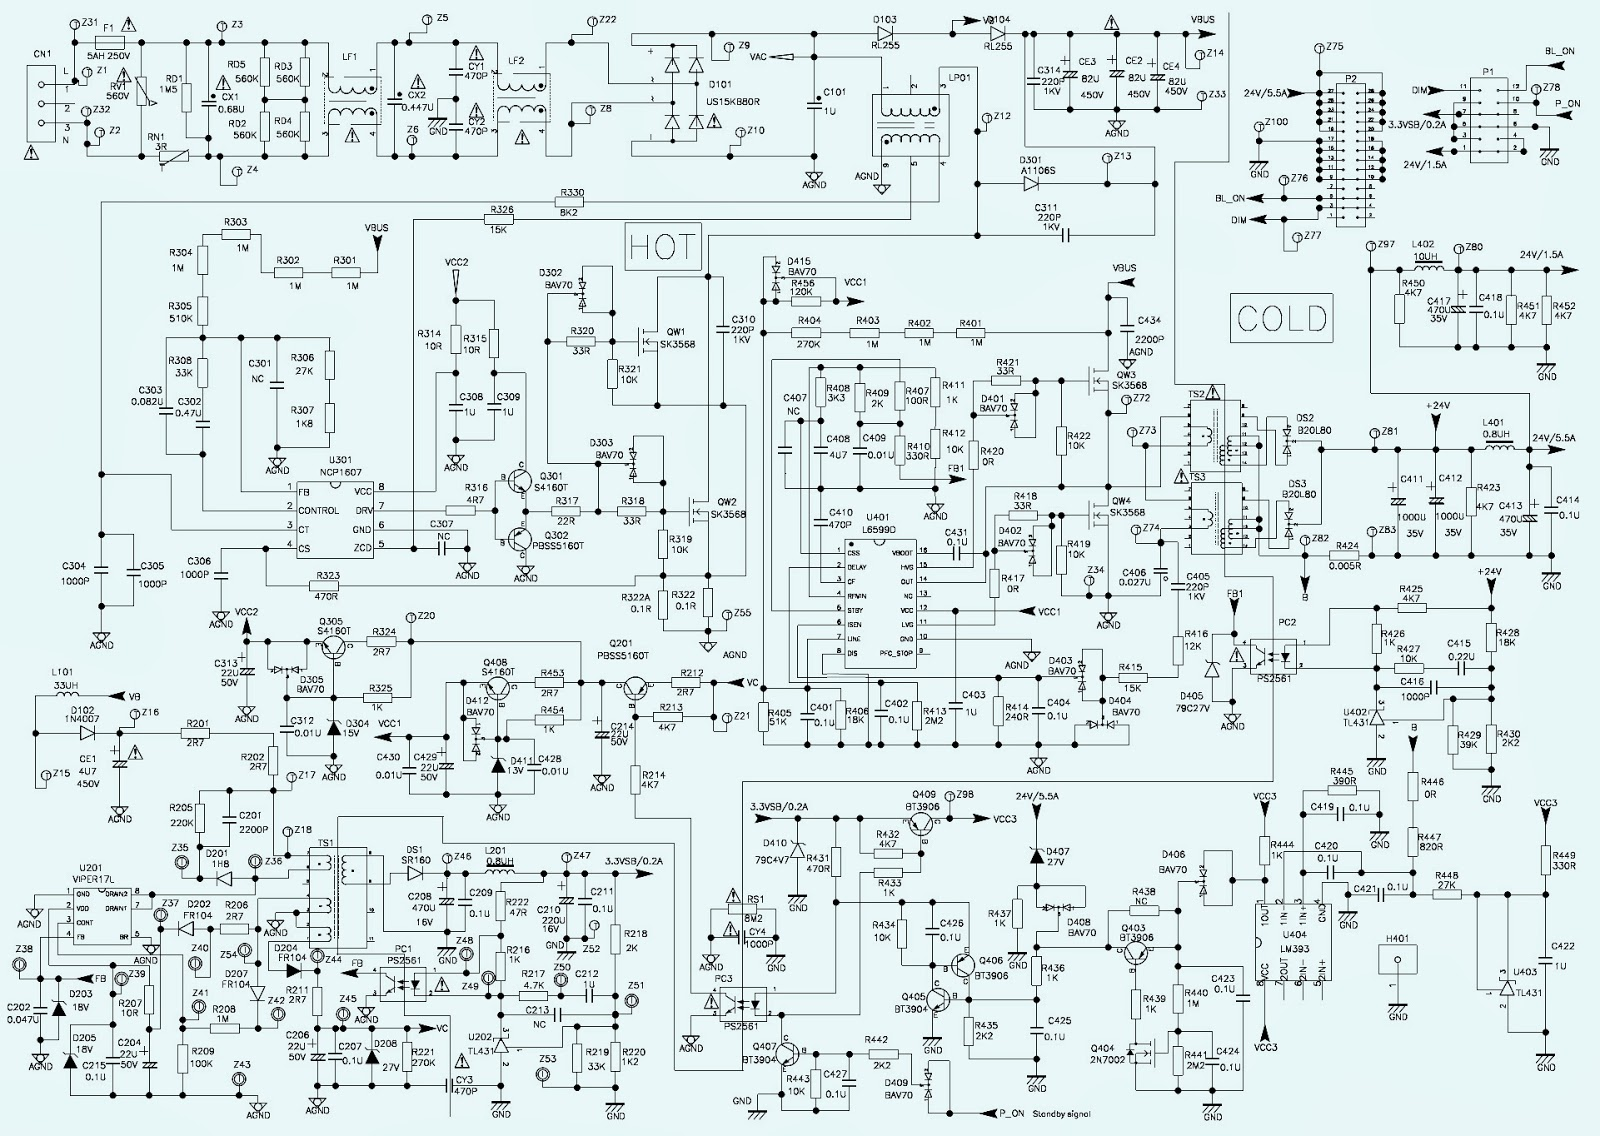 Tv Power Schematic Auto Electrical Wiring Diagram Crt Electronic Repair No High Voltage Toshiba 20as24 40 Led Get Free Image About